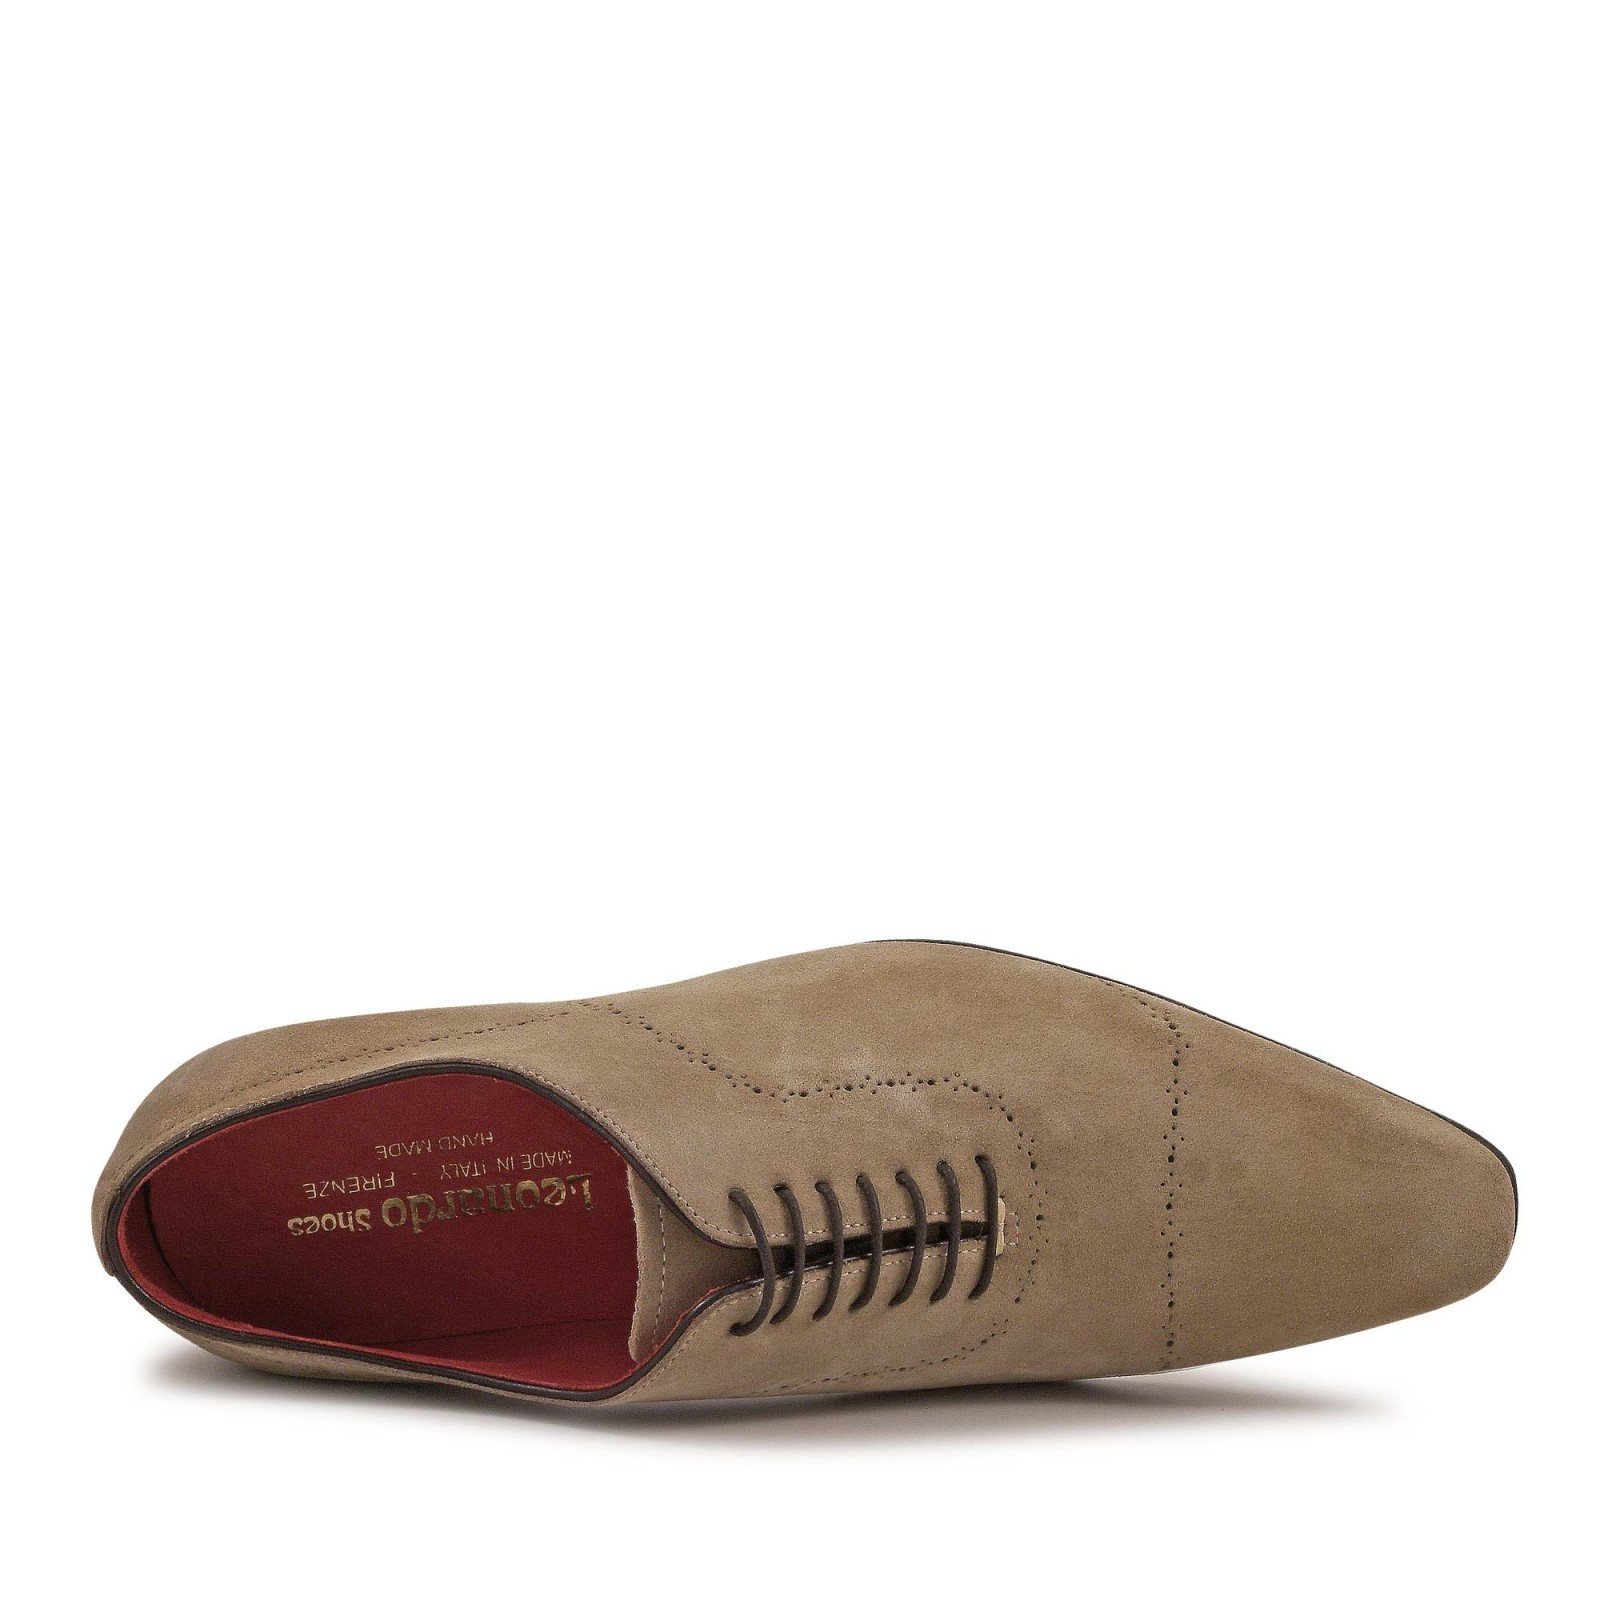 Handmade men s brogues shoes in fossil suede leather 3S